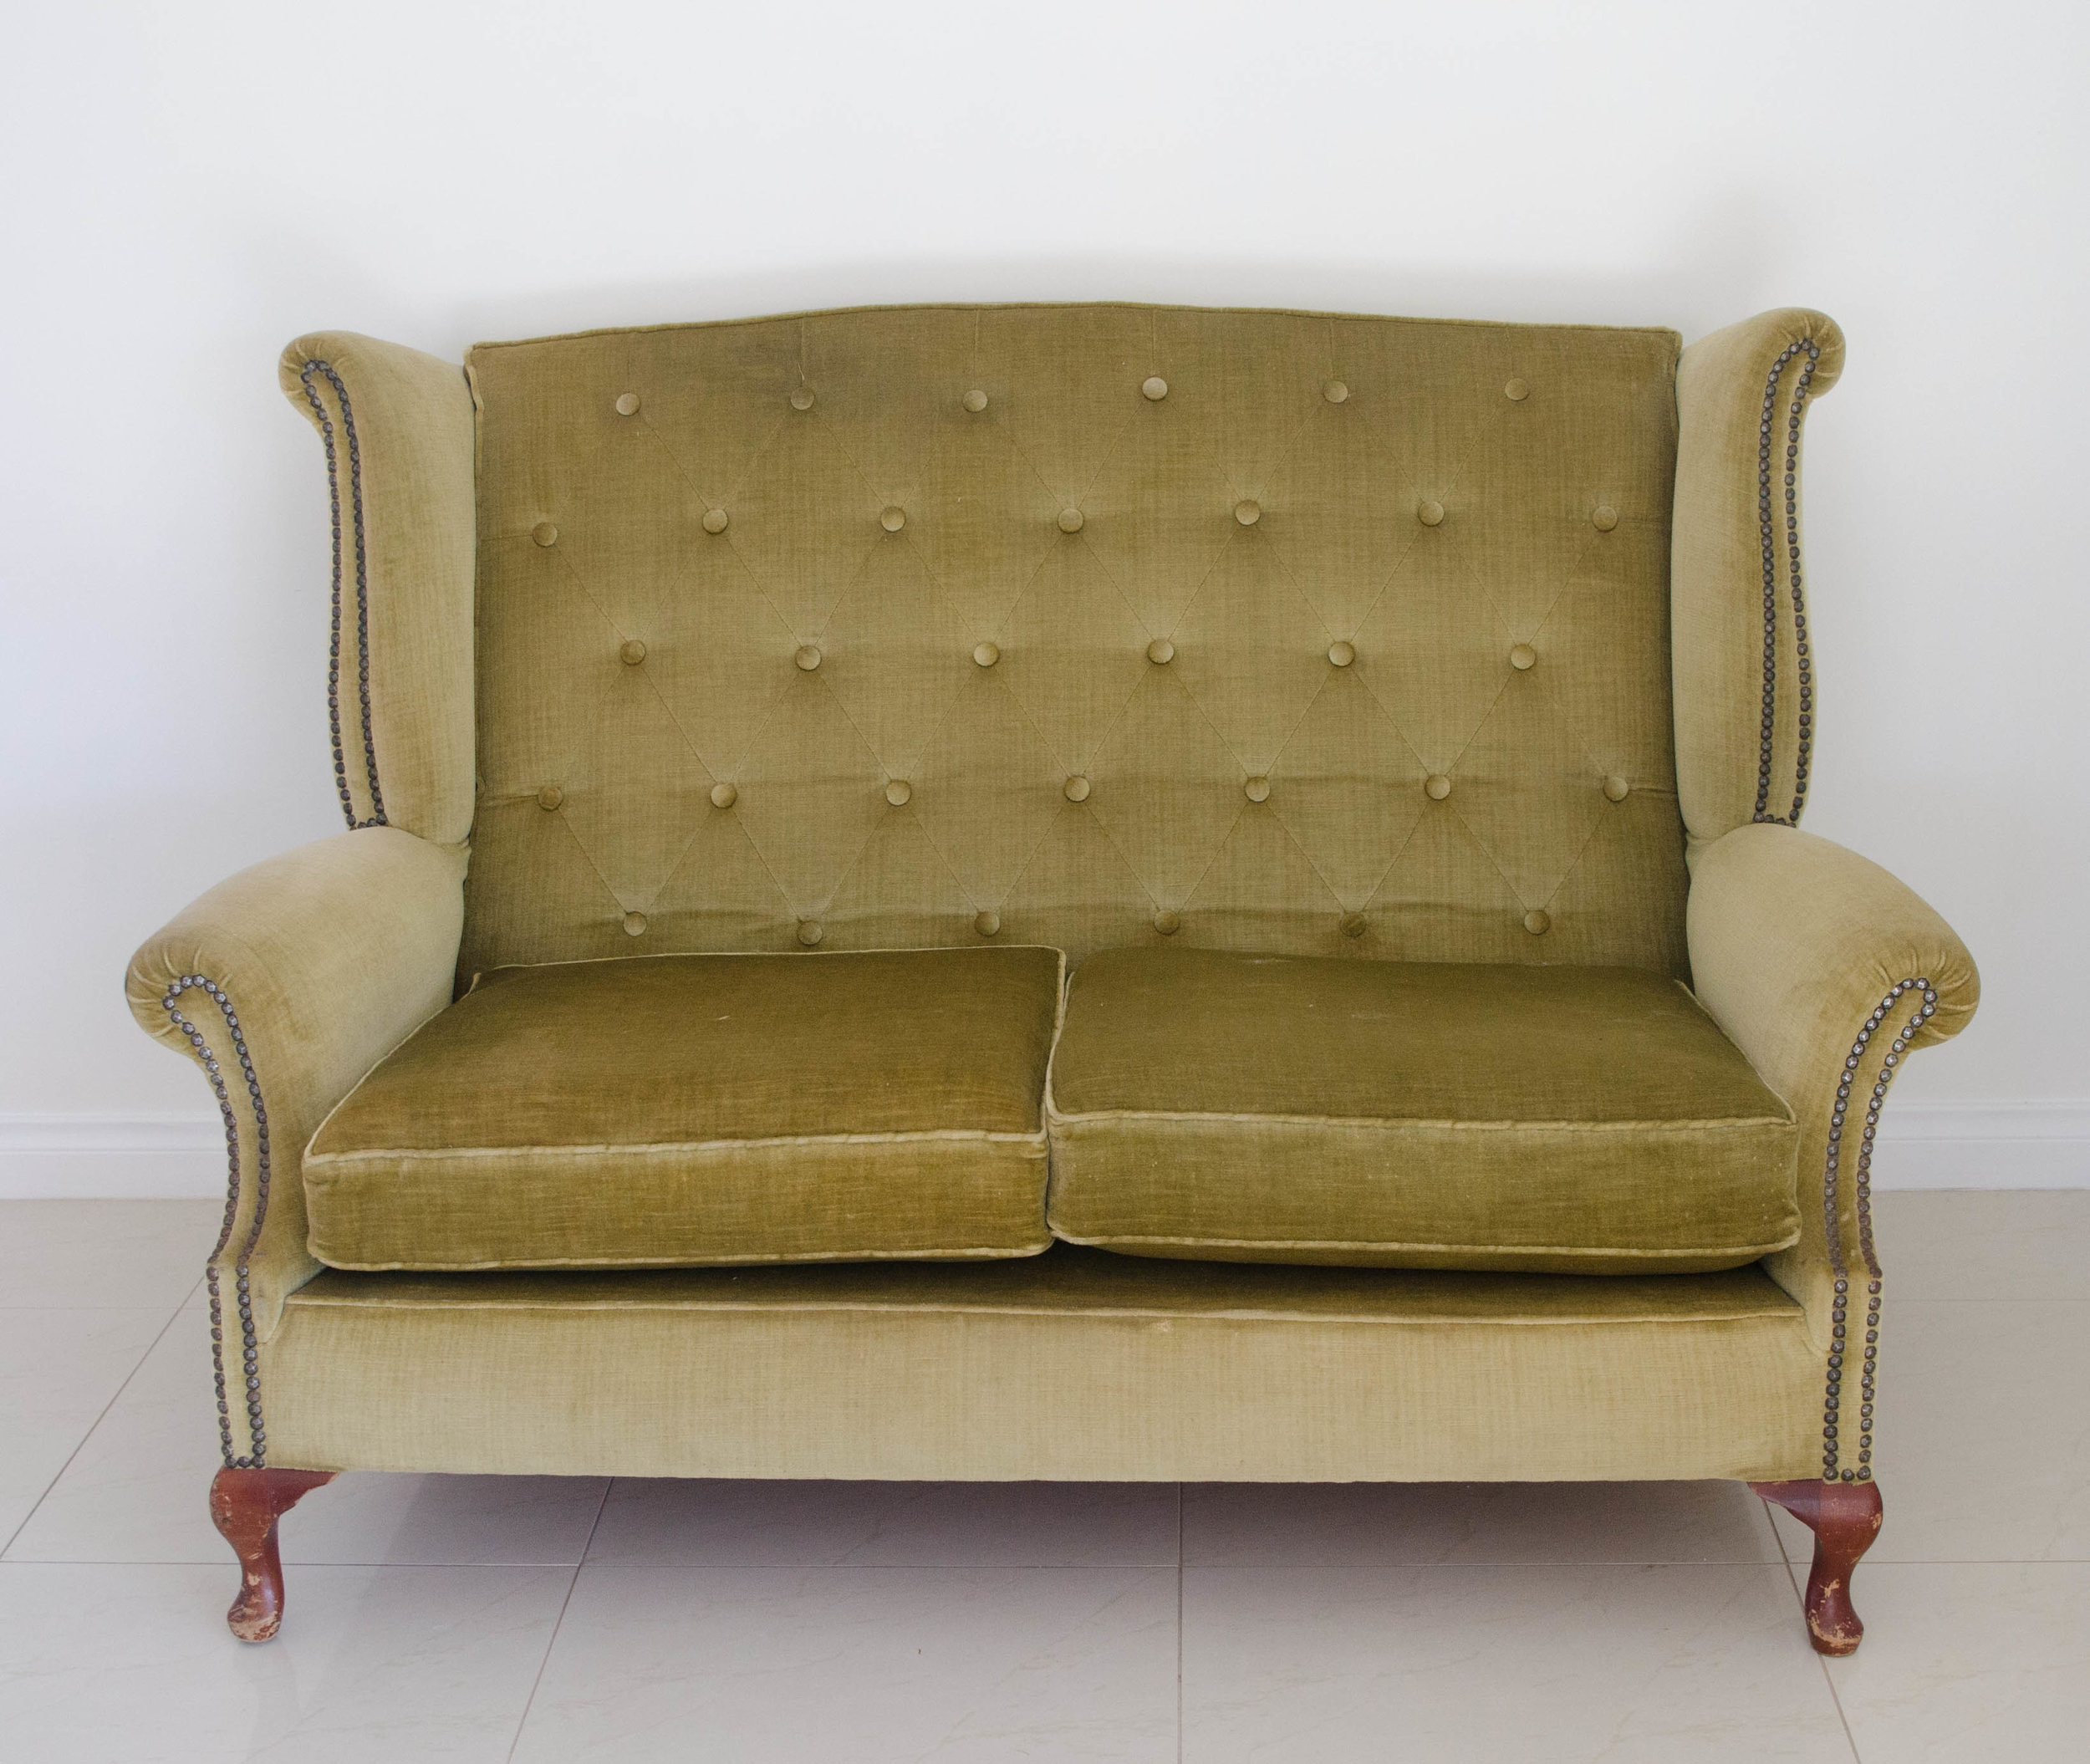 Marley Green Lounge   $90.00 + GST (3-DAY HIRE)                                            QUANTITY: 1